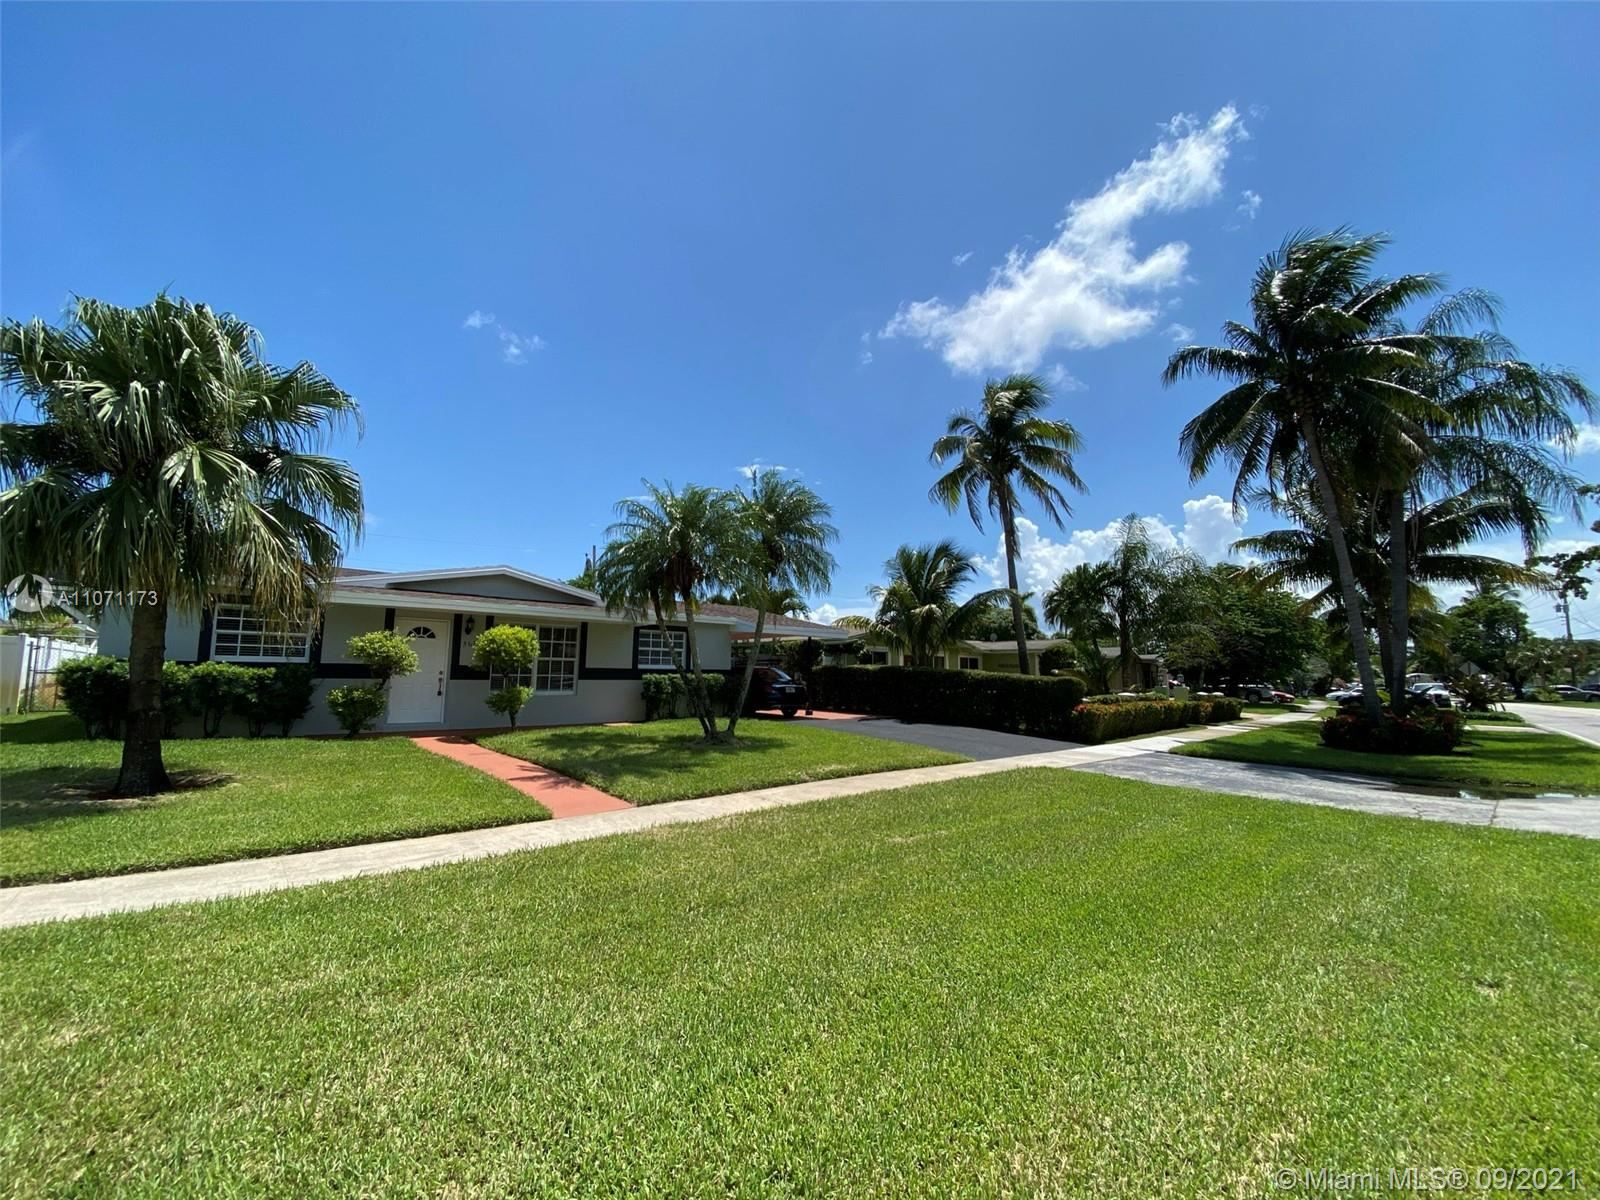 3610 NW 41st St, Lauderdale Lakes, FL 33309 - #: A11071173